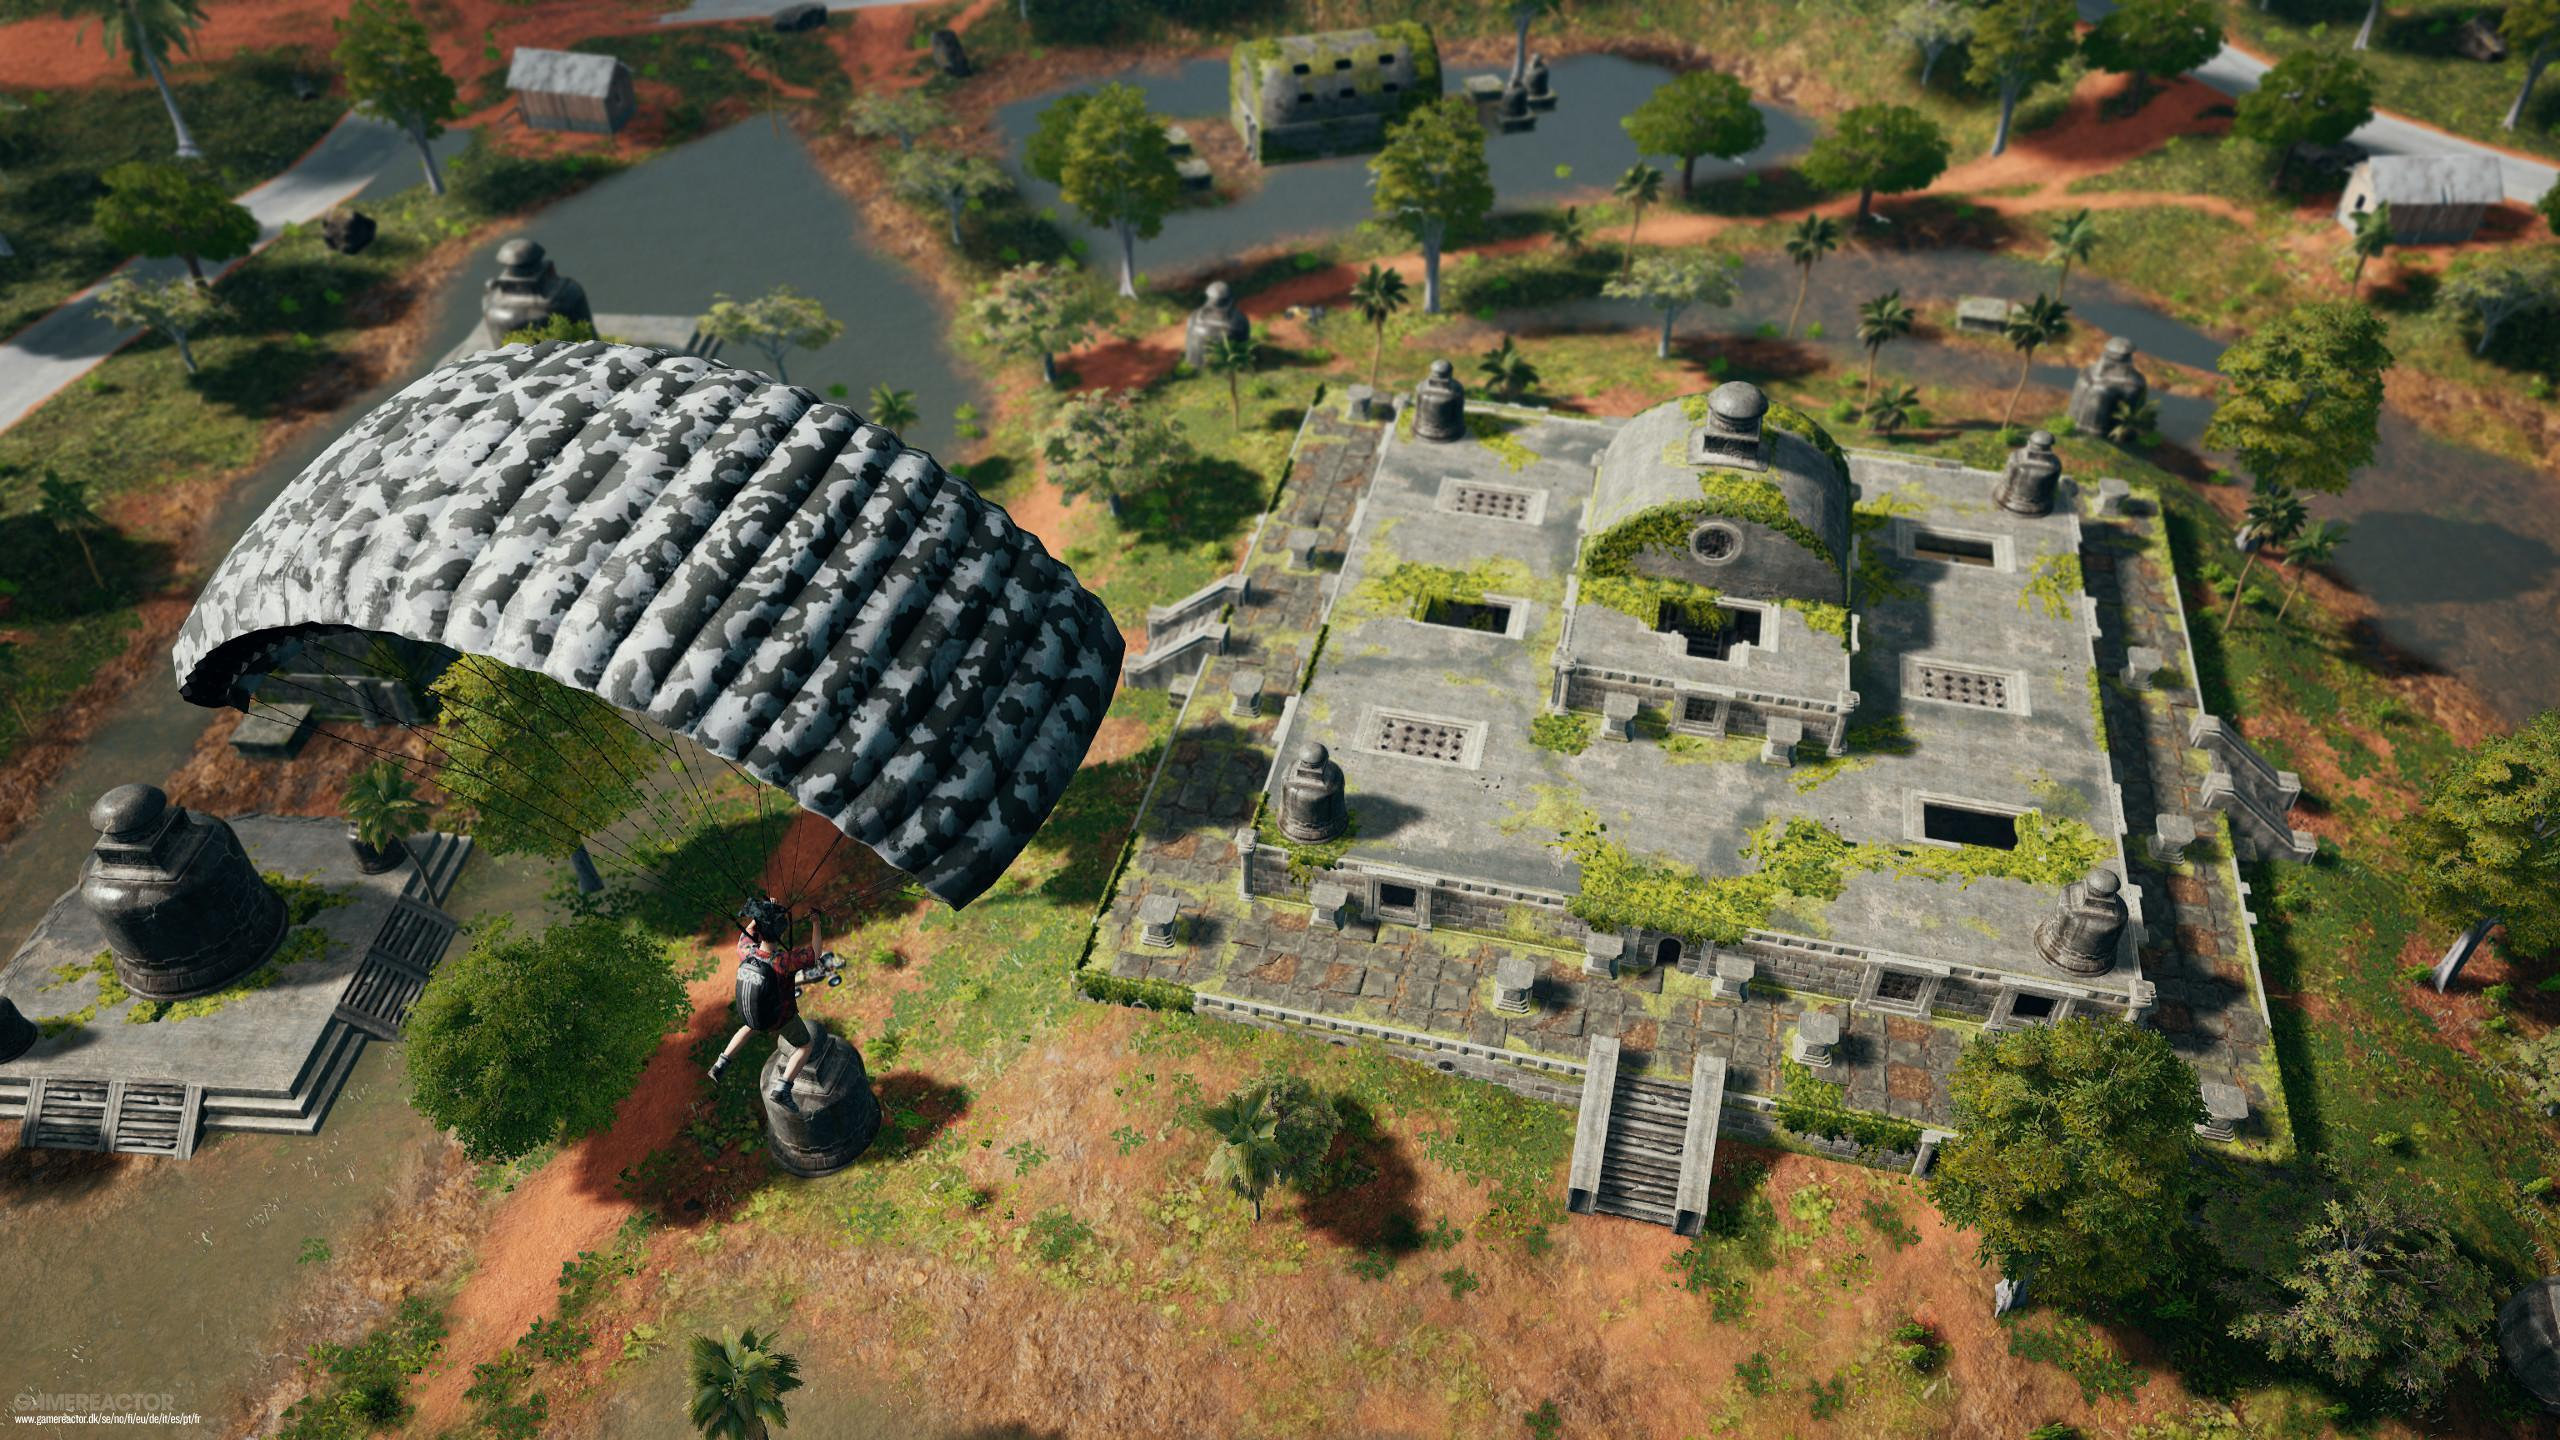 How To Play New Pubg Map Sanhok On Iphone Right Now: PUBG Map Wallpapers